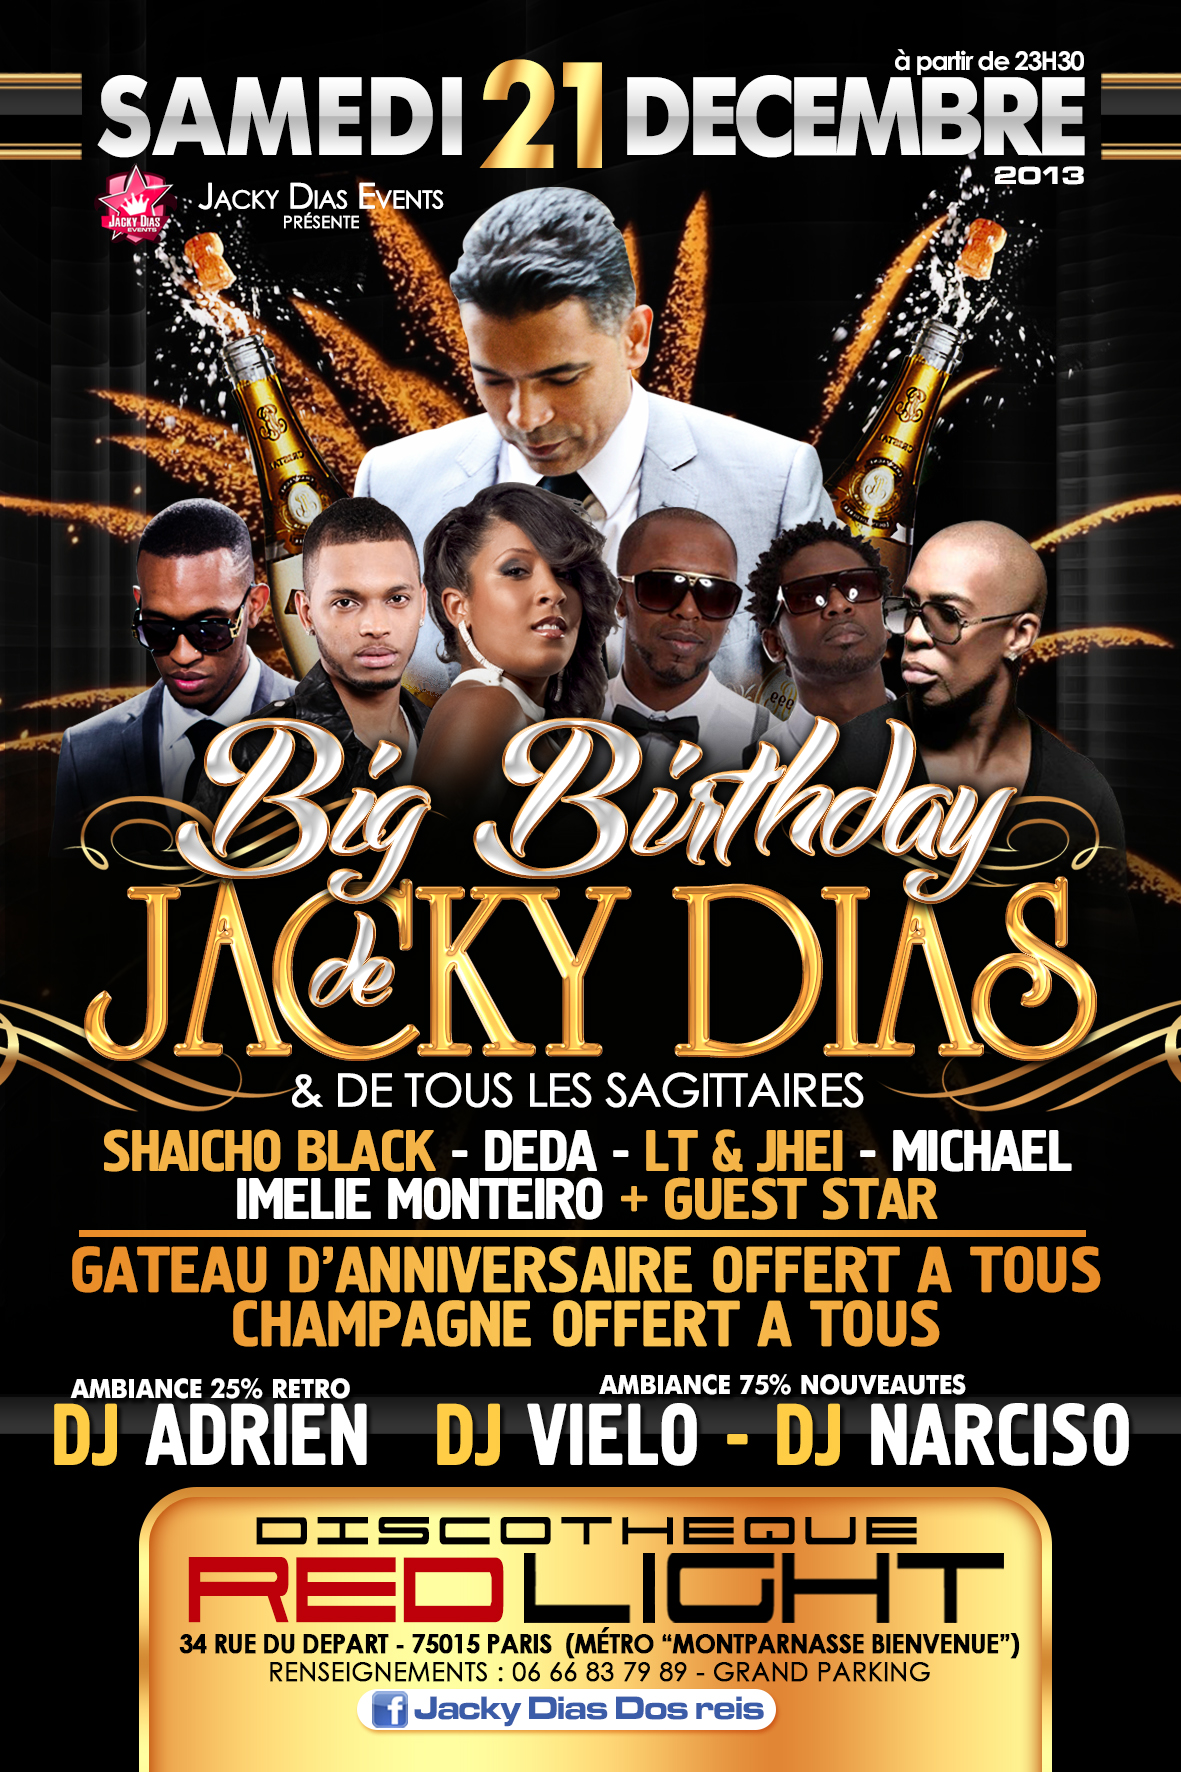 jacky+dias+birthday+2013+-+recto(2)